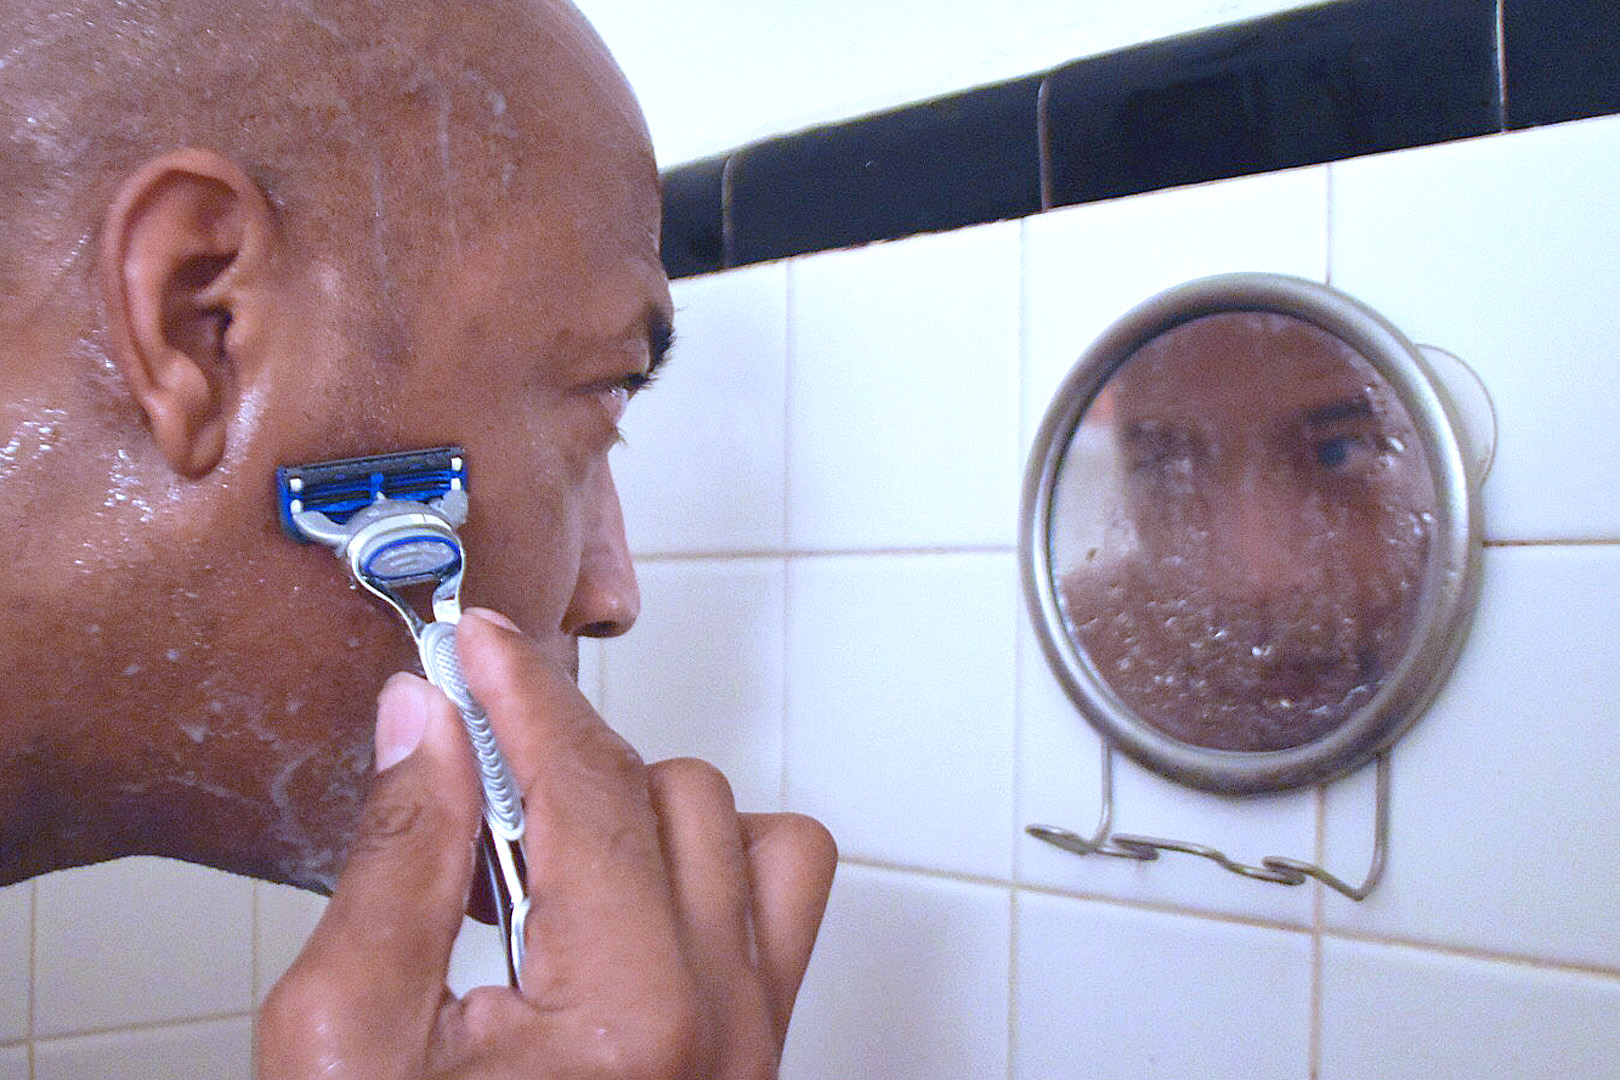 How To Get Rid Of Razor Bumps Home Remedies   Get Note IT